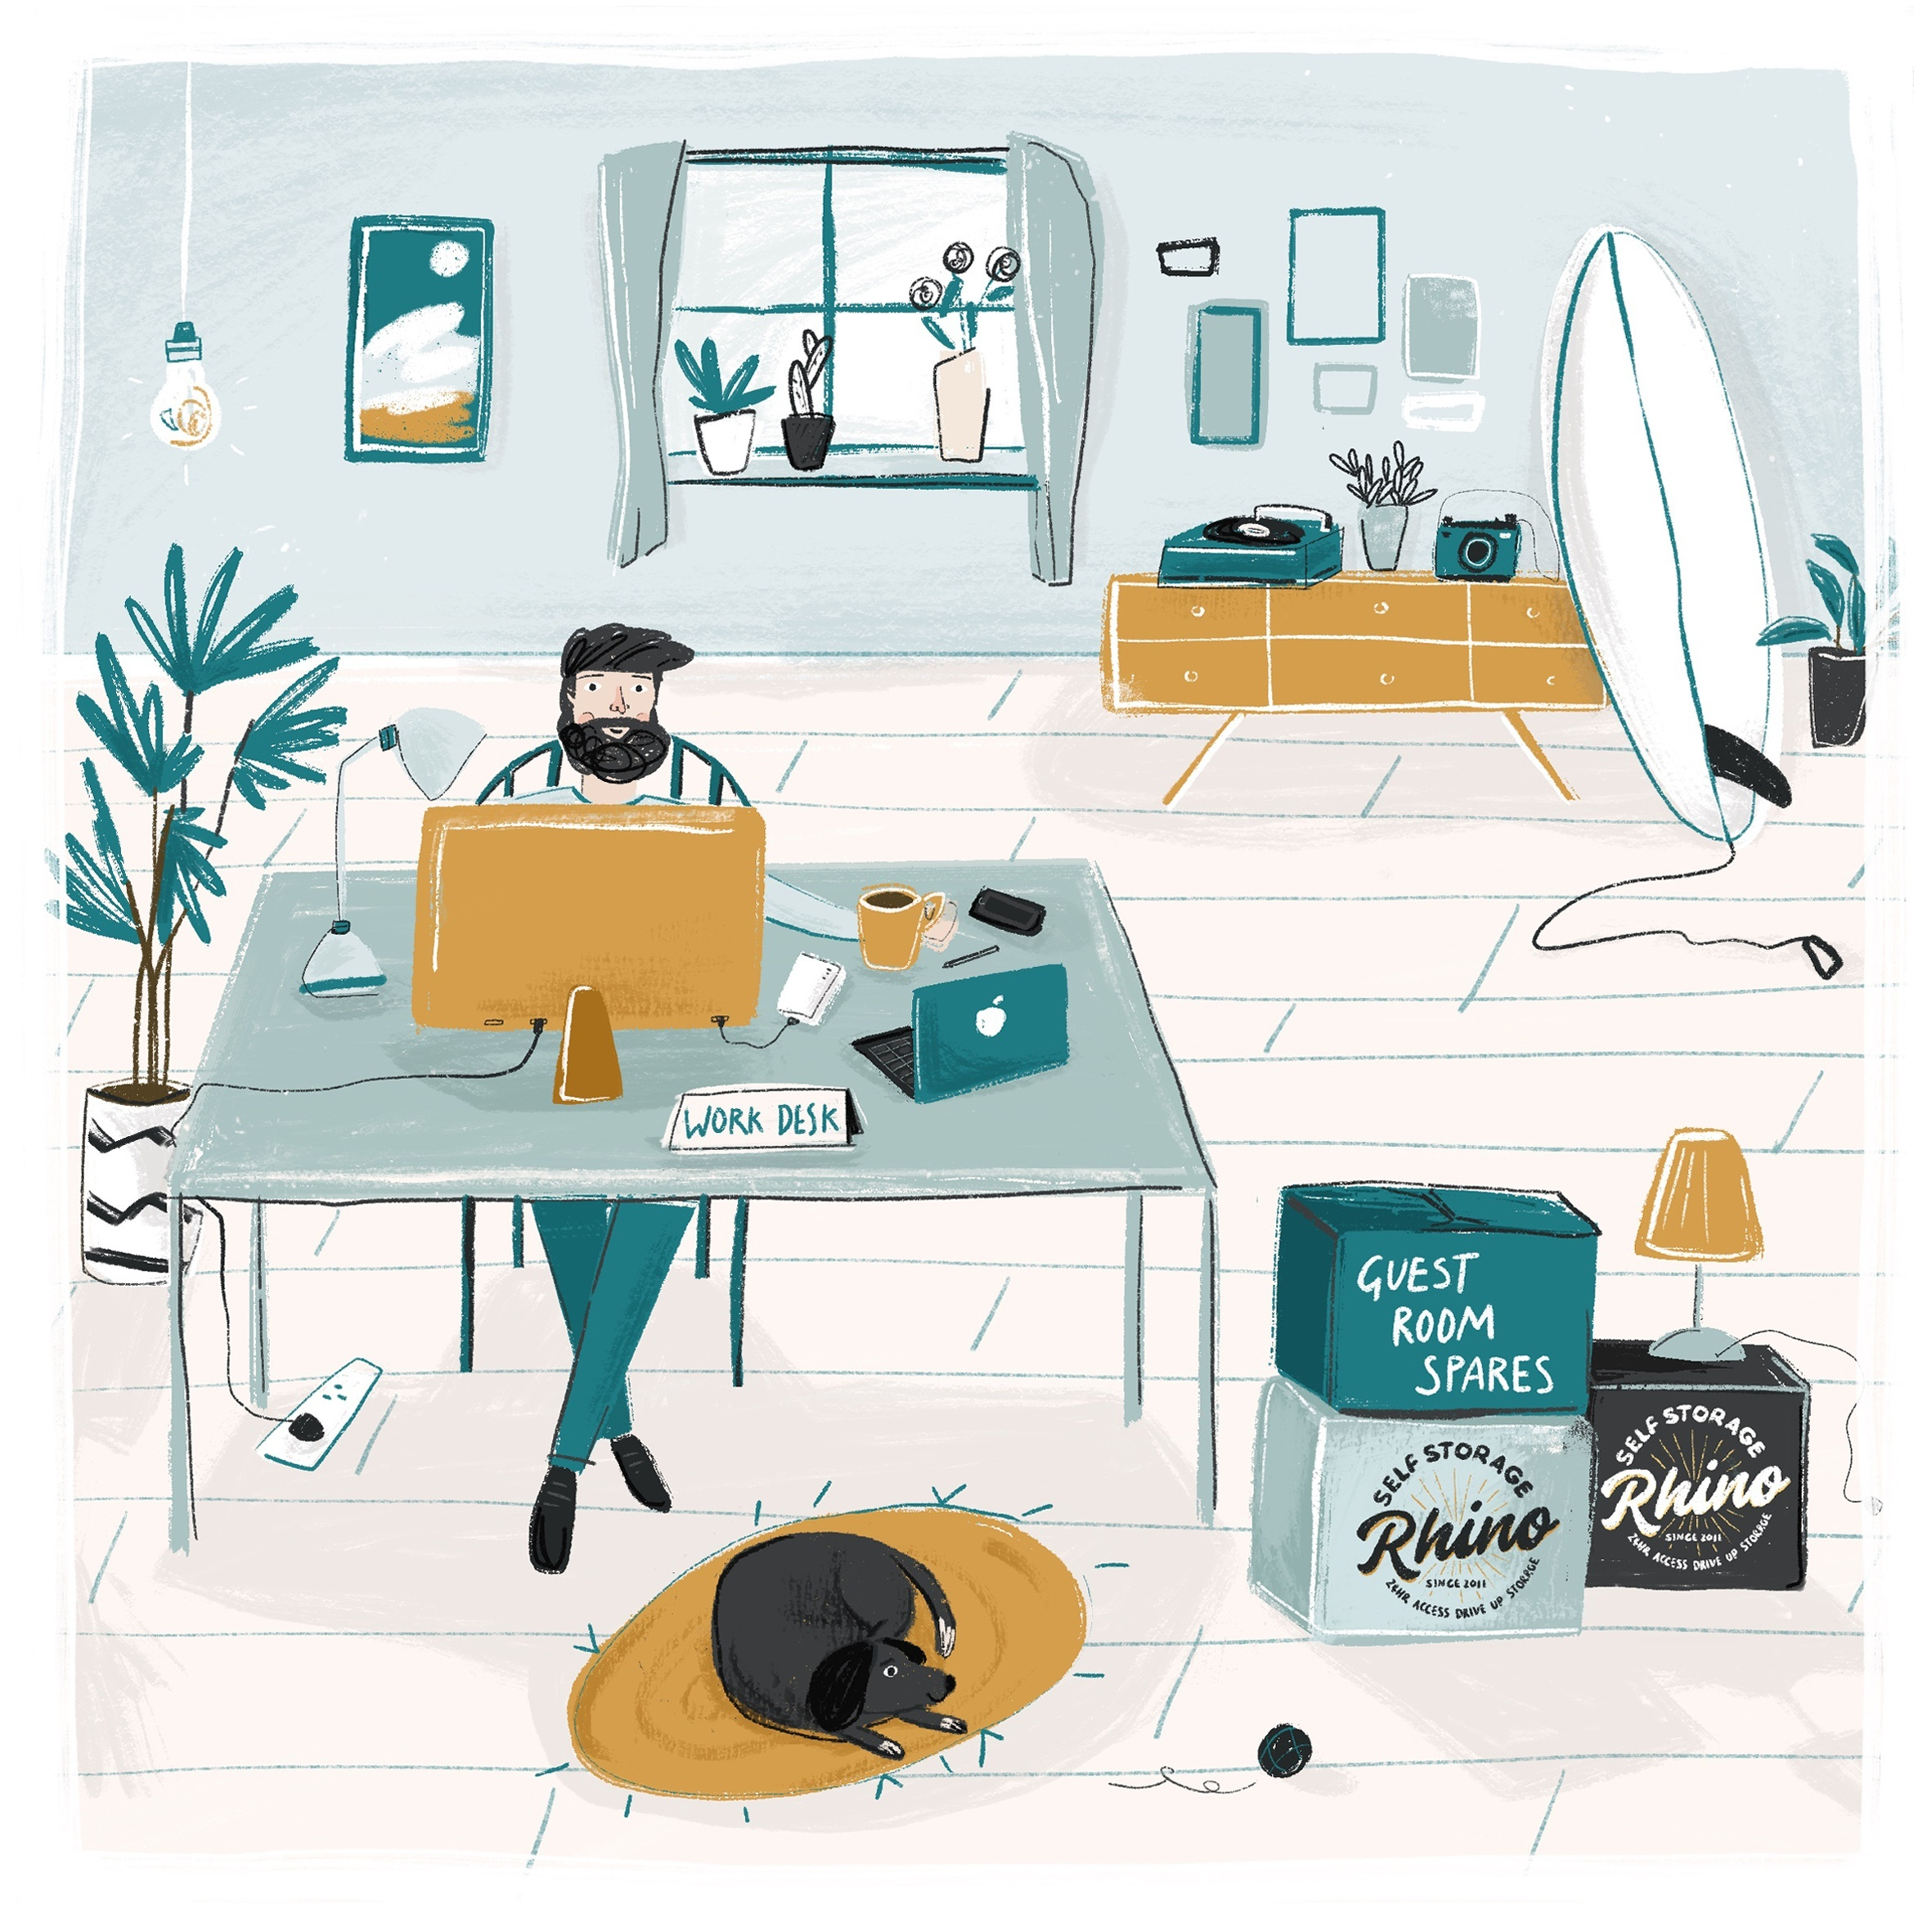 Illustration based on working from home for Southwick and Rhino Storage